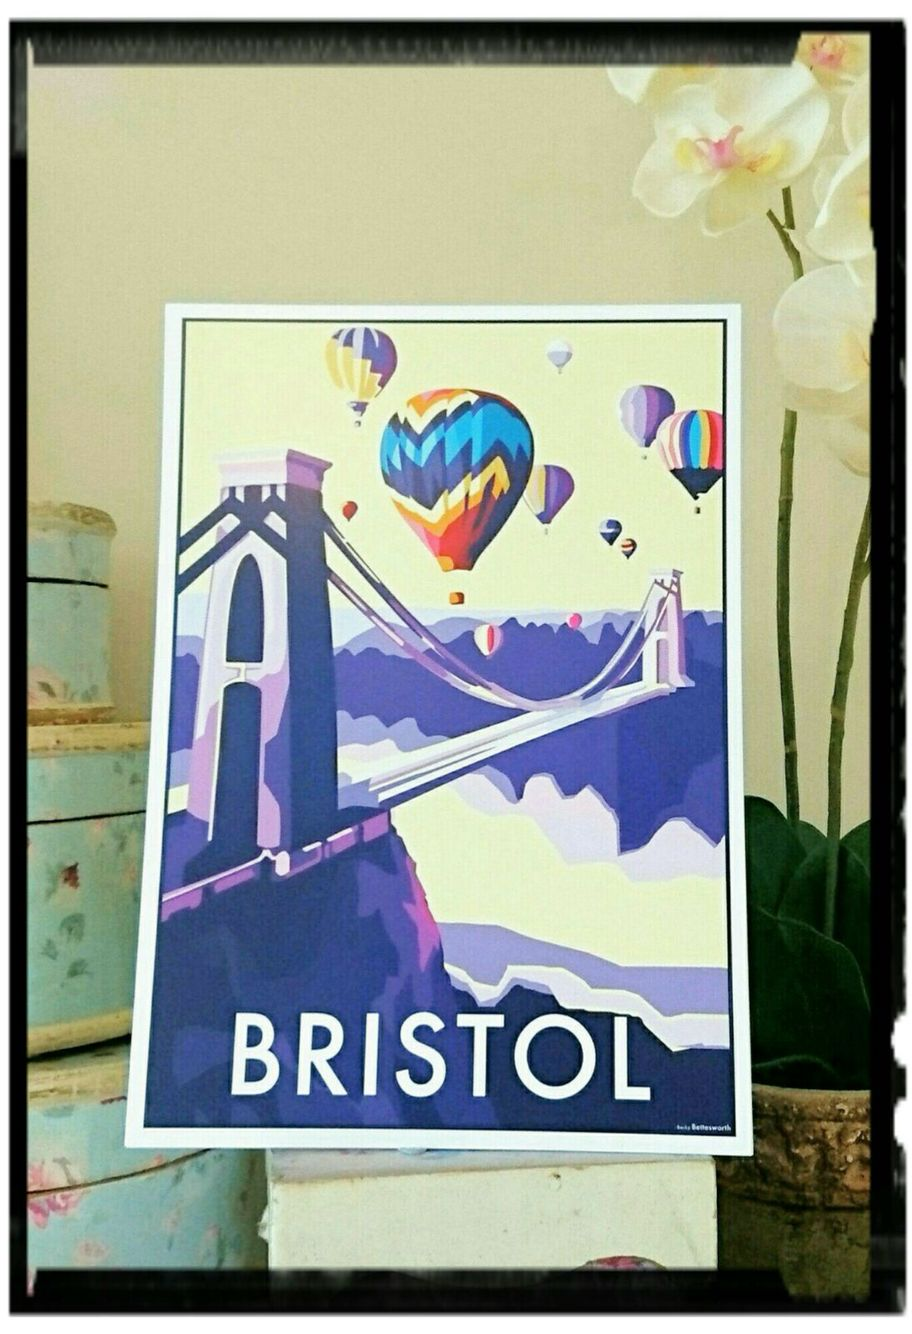 Beautiful prints and posters of Bristol available to buy www.beckybettesworth.co.uk #travelposters #devonartist #seasideprints #vintage #bristol #somerset #ssgreatbritain #riveravon #cliftonsurpenionbridge #beckybettesworth